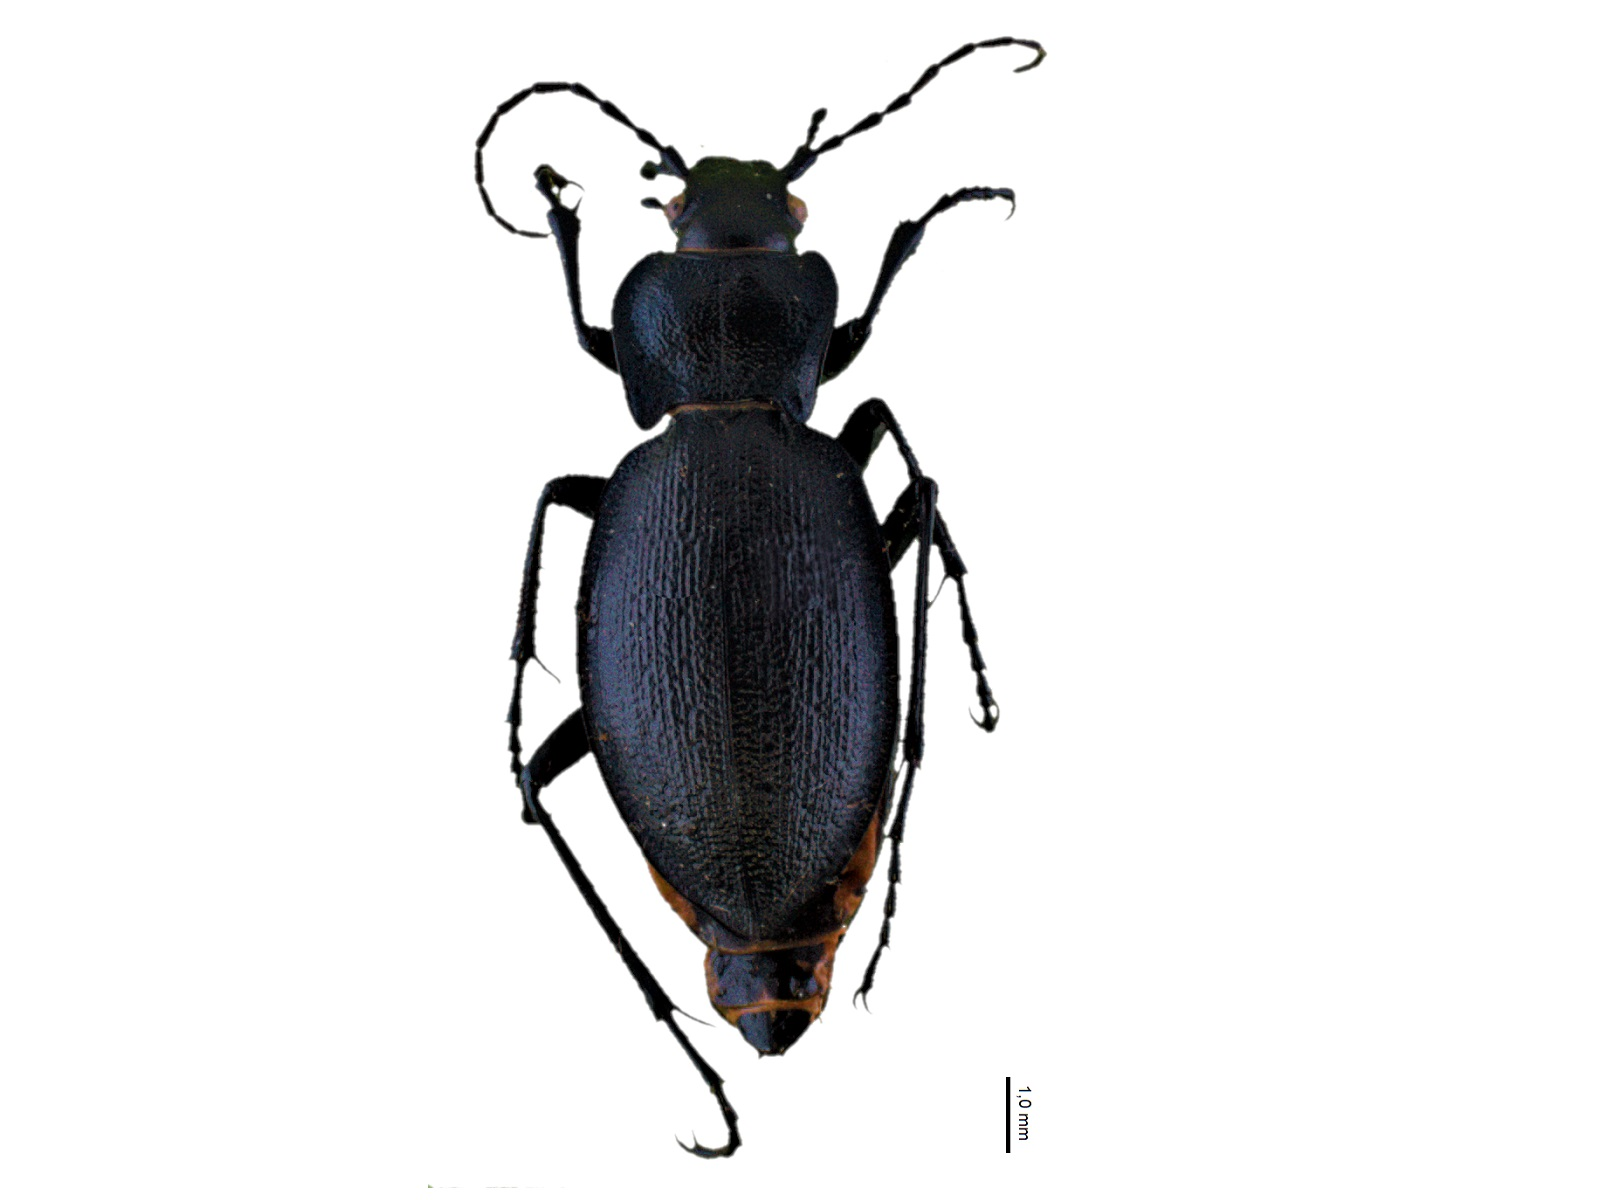 Carabus problematicusHerbst, 1786